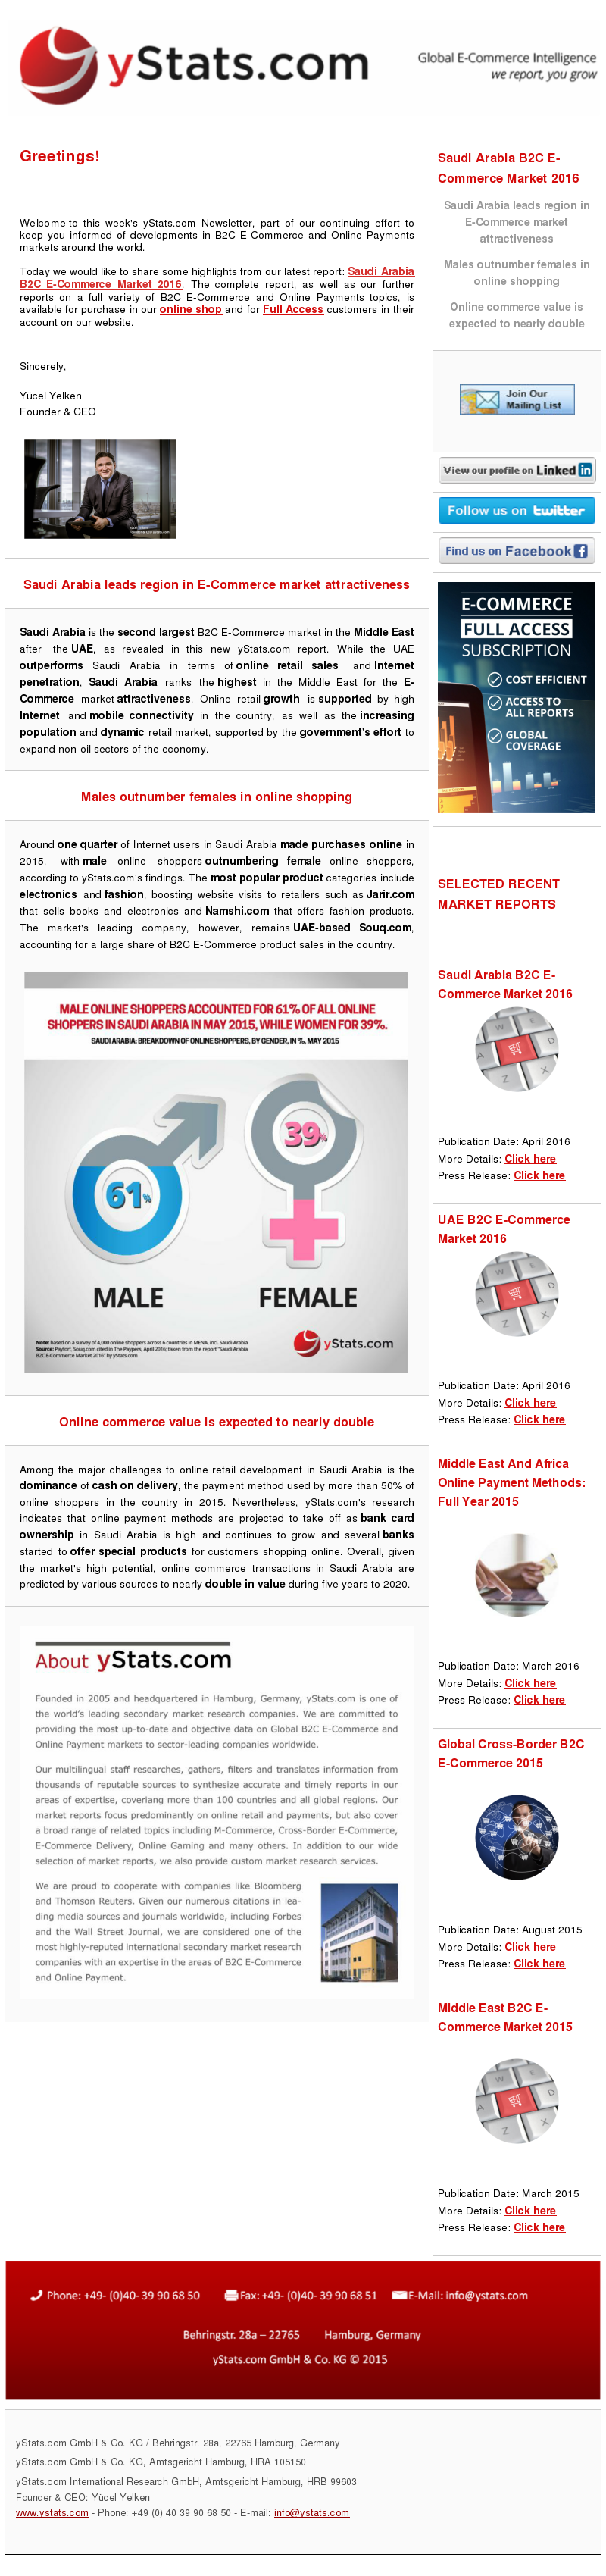 yStats.com Newsletter B2C E-Commerce Saudi Arabia , Saudi Arabia B2C E-Commerce Market 2016 , online retail growth , Jarir.com , Namshi.com , Souq.com , online shopper penetration rate , market size , online shoppers , online retail sales , ecommerce sales , internet penetration , emerging market , local ecommerce companies , global online retail companies , online shopping , internet retail sales , e-commerce competitors , international players , newsletter , 2016 Saudi Arabia is the second largest B2C E-Commerce market in the Middle East after the UAE, as revealed in this new yStats.com report. While the UAE outperforms Saudi Arabia in terms of online retail sales and Internet penetration, Saudi Arabia ranks the highest in the Middle East for the E-Commerce market attractiveness. Online retail growth is supported by high Internet and mobile connectivity in the country, as well as the increasing population and dynamic retail market, supported by the government's effort to expand non-oil sectors of the economy.  Around one quarter of Internet users in Saudi Arabia made purchases online in 2015, with male online shoppers outnumbering female online shoppers, according to yStats.com's findings. The most popular product categories include electronics and fashion, boosting website visits to retailers such as Jarir.com that sells books and electronics and Namshi.com that offers fashion products. The market's leading company, however, remains UAE-based Souq.com, accounting for a large share of B2C E-Commerce product sales in the country.  Among the major challenges to online retail development in Saudi Arabia is the dominance of cash on delivery, the payment method used by more than 50% of online shoppers in the country in 2015. Nevertheless, yStats.com's research indicates that online payment methods are projected to take off as bank card ownership in Saudi Arabia is high and continues to grow and several banks started to offer special products for customers shopping onli